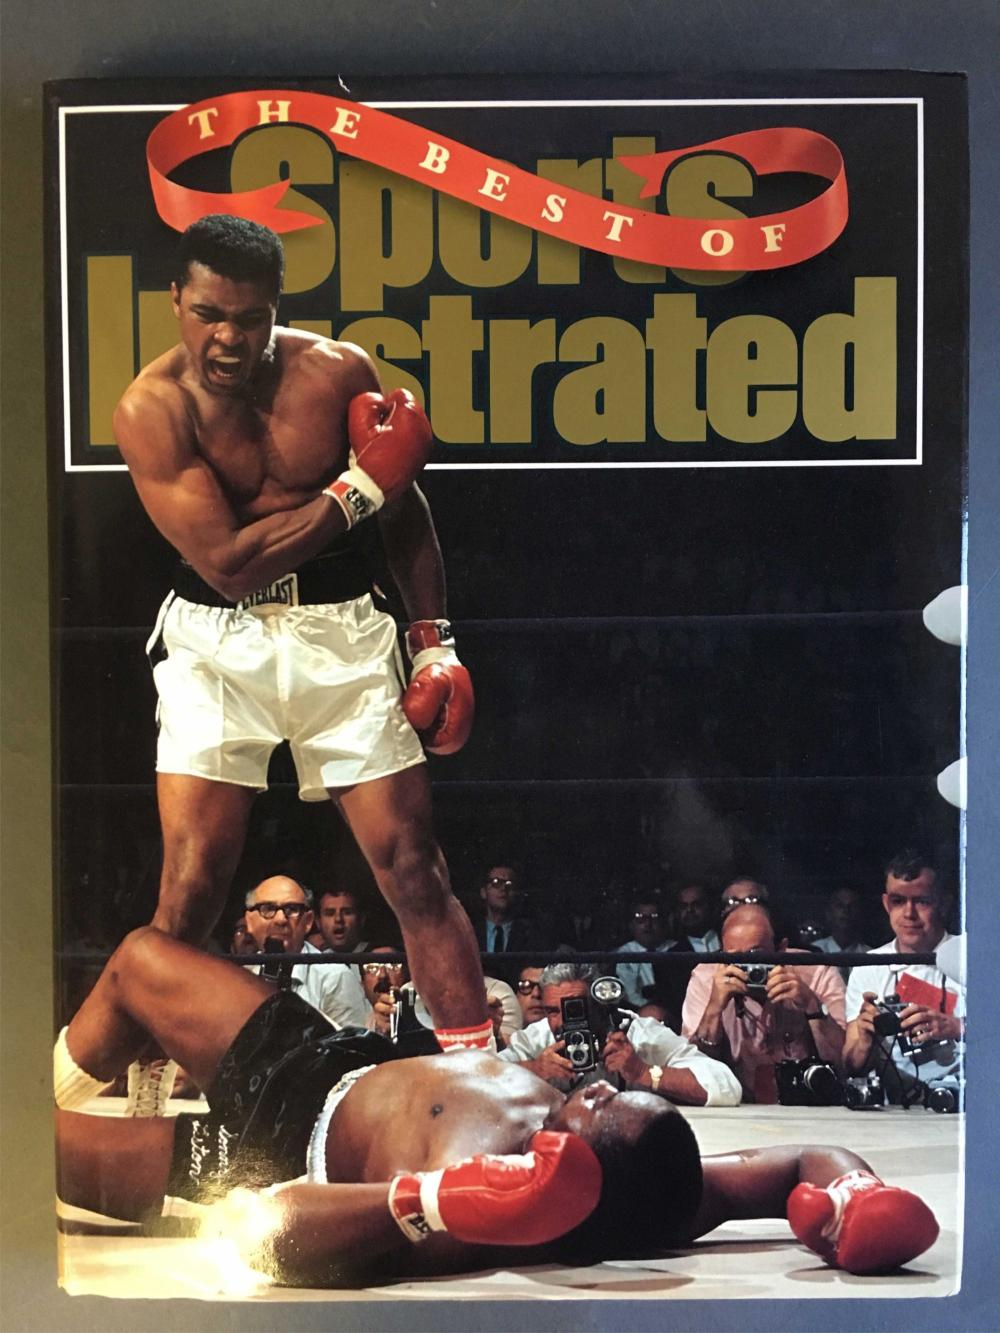 Best Of Sports Illustrated. Sgd by Pete Rose, etc.